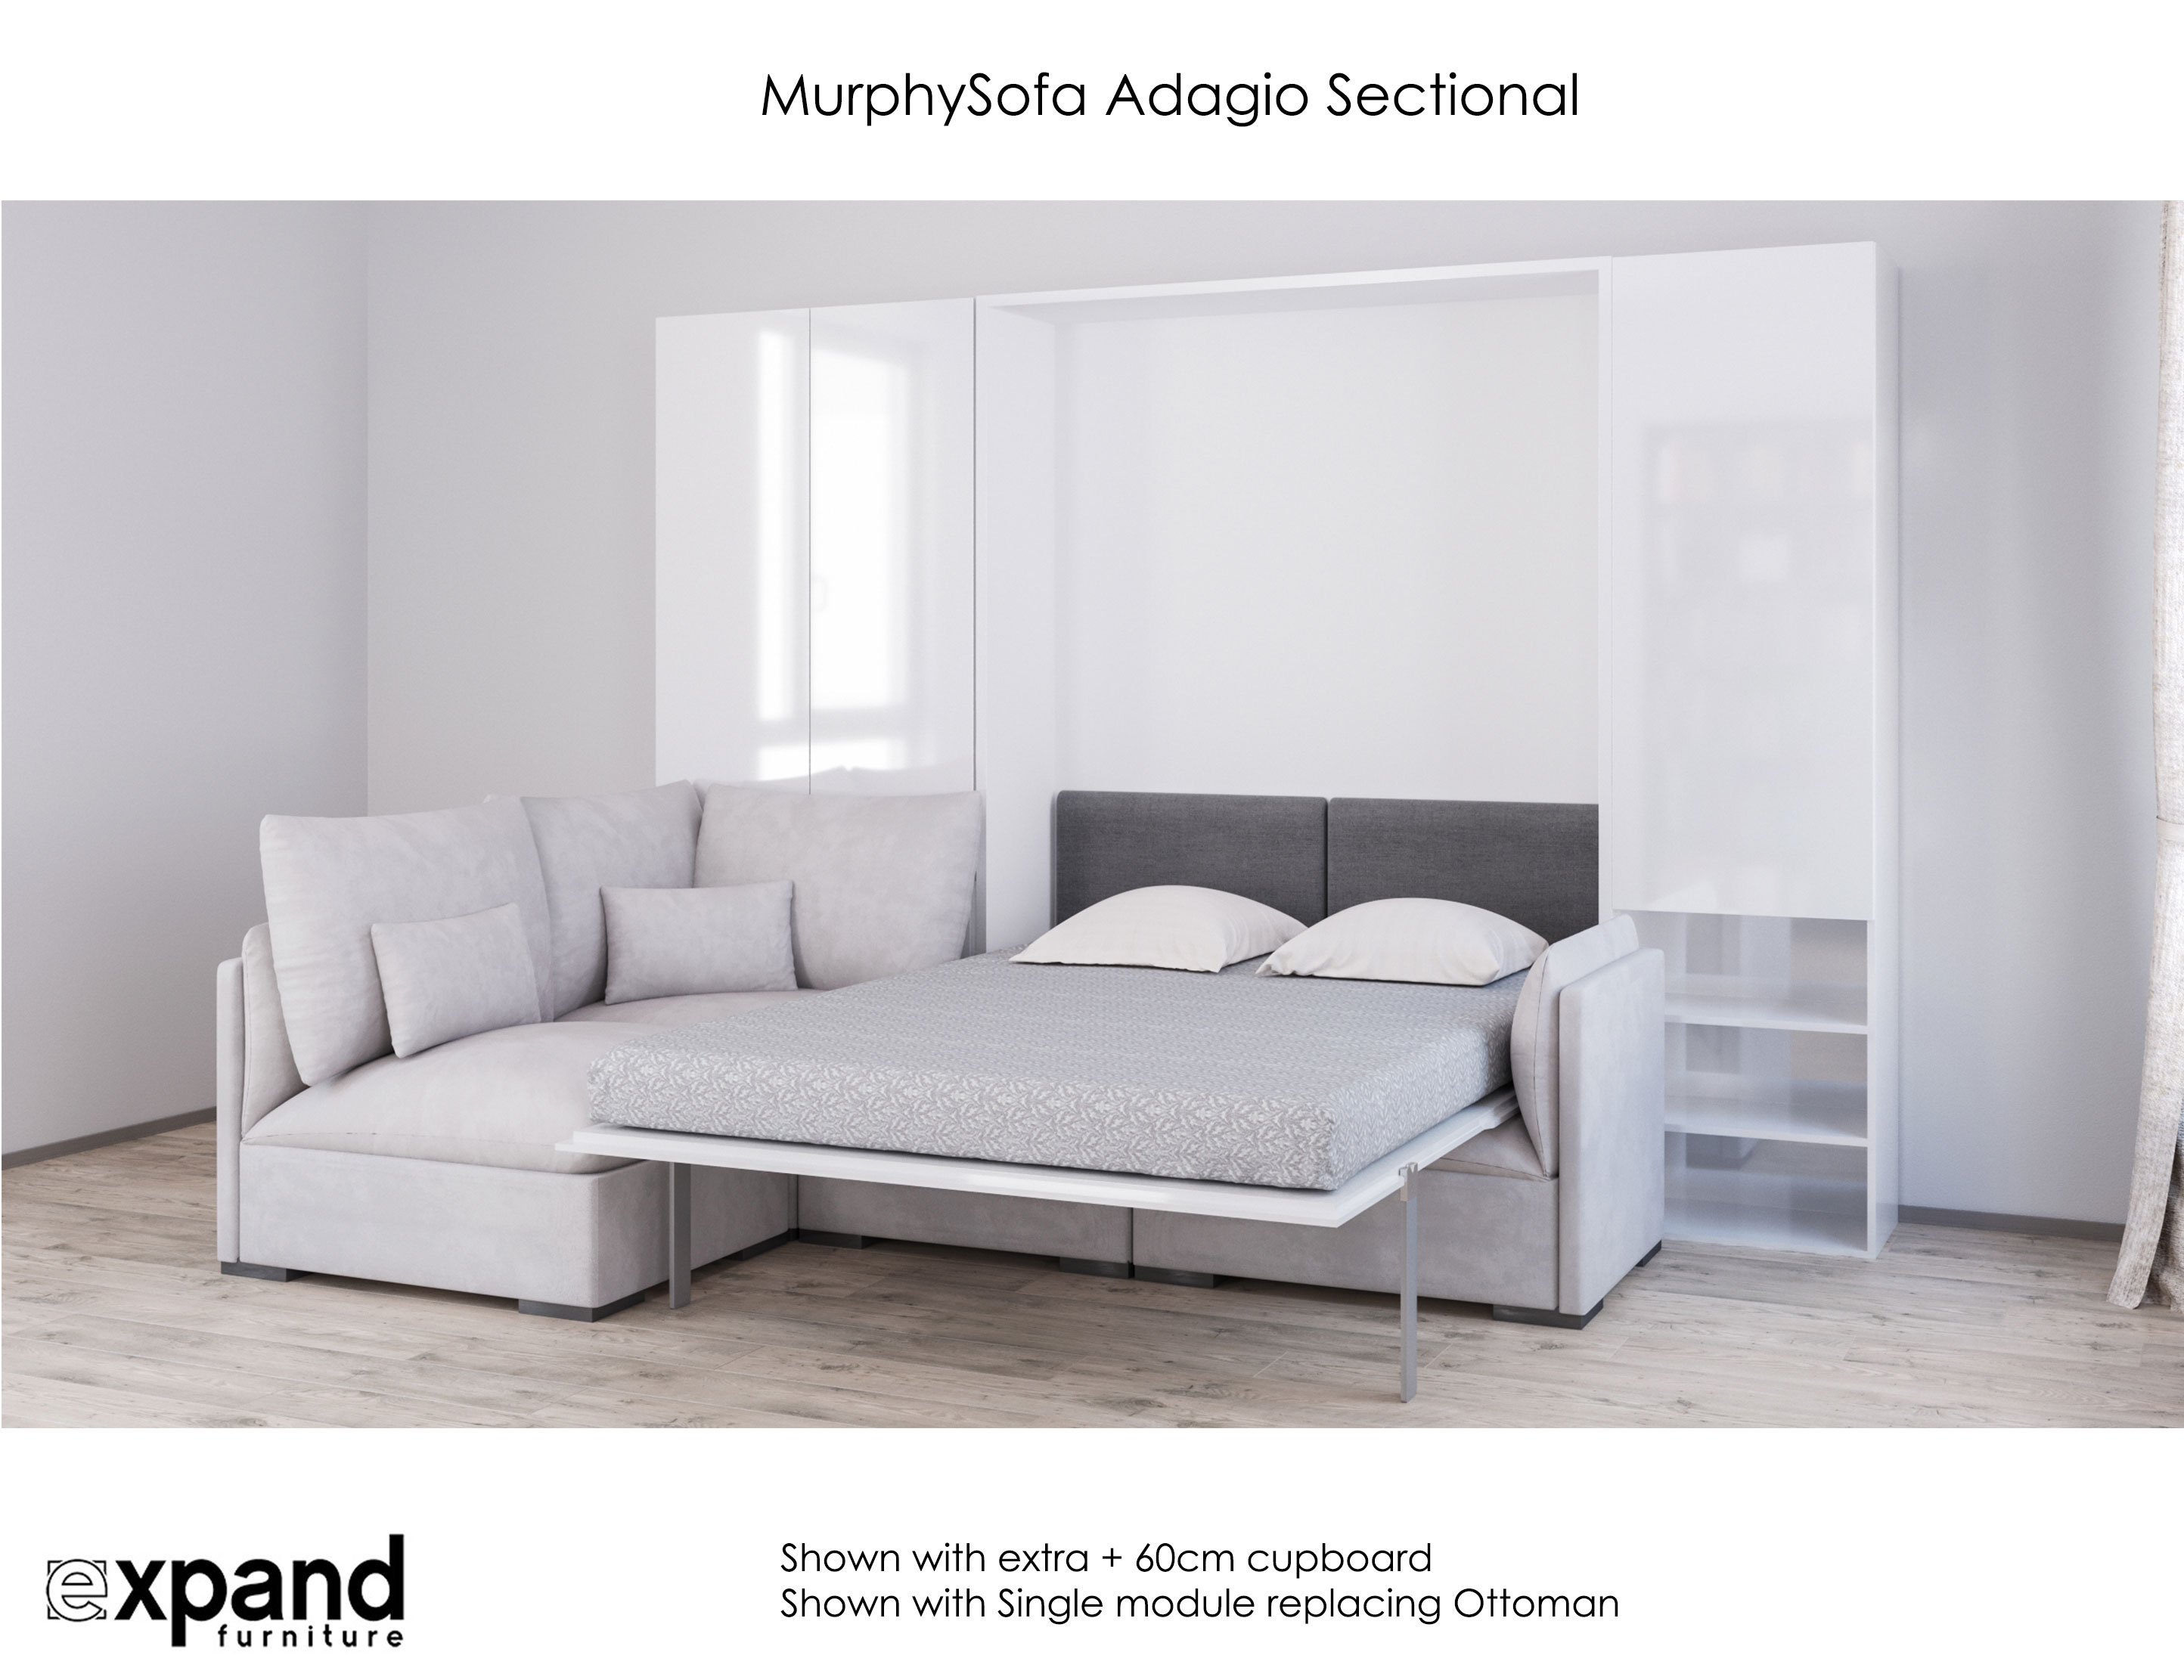 Murphysofa Adagio Queen Luxury Sectional Sofa Wall Bed Expand Furniture Folding Tables